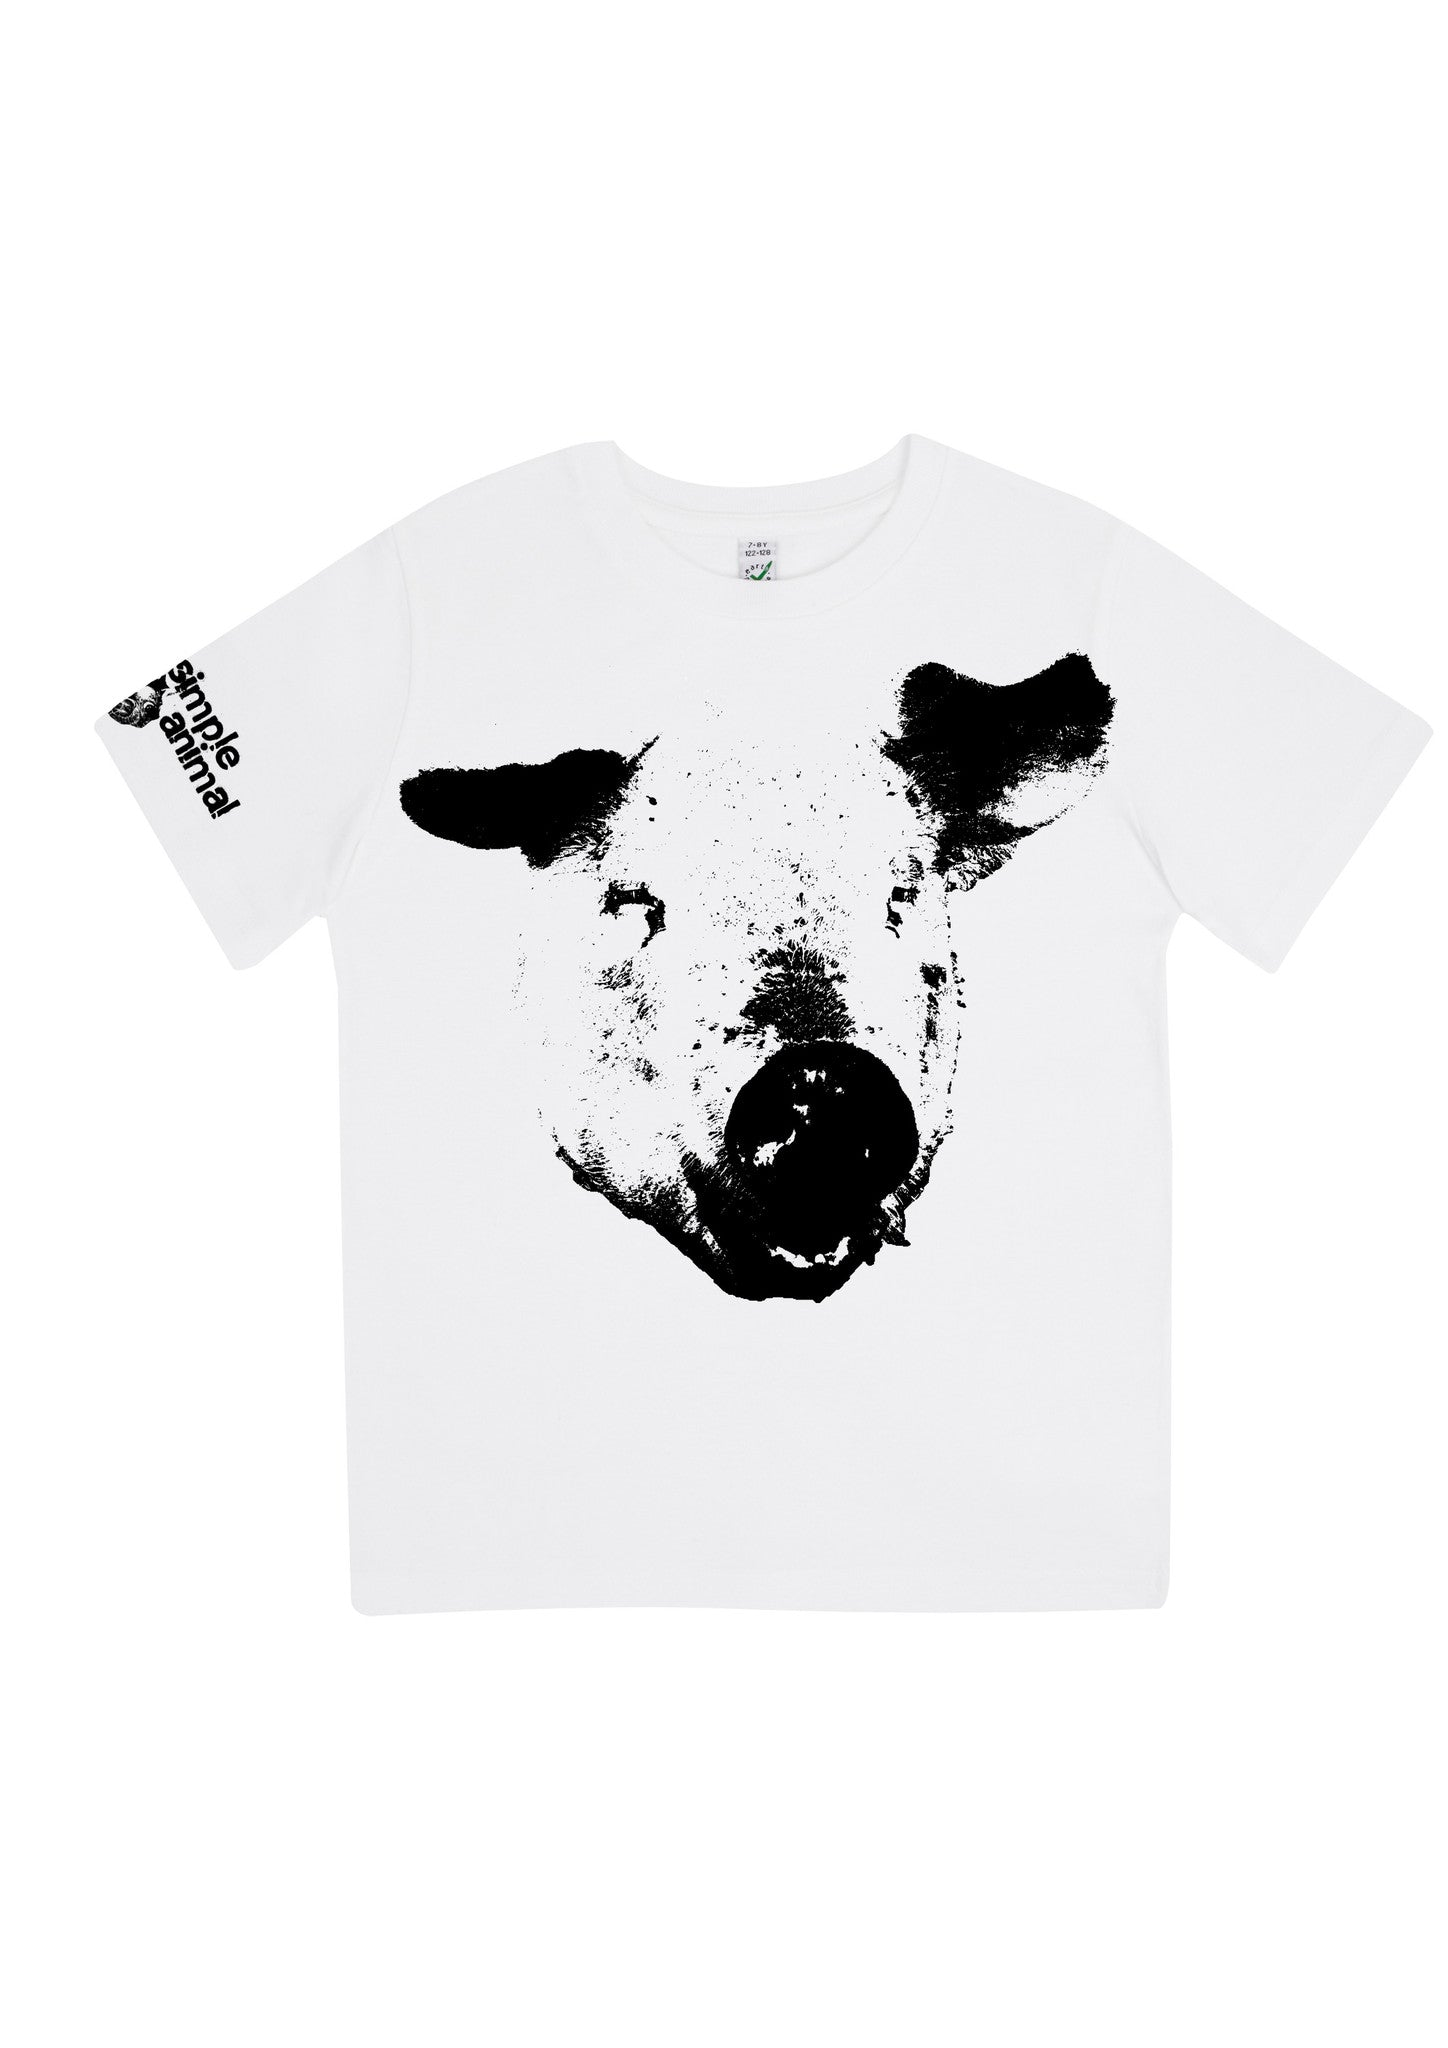 The Pig, 100% Organic Cotton, for the Kids - Simple Animal  - 2